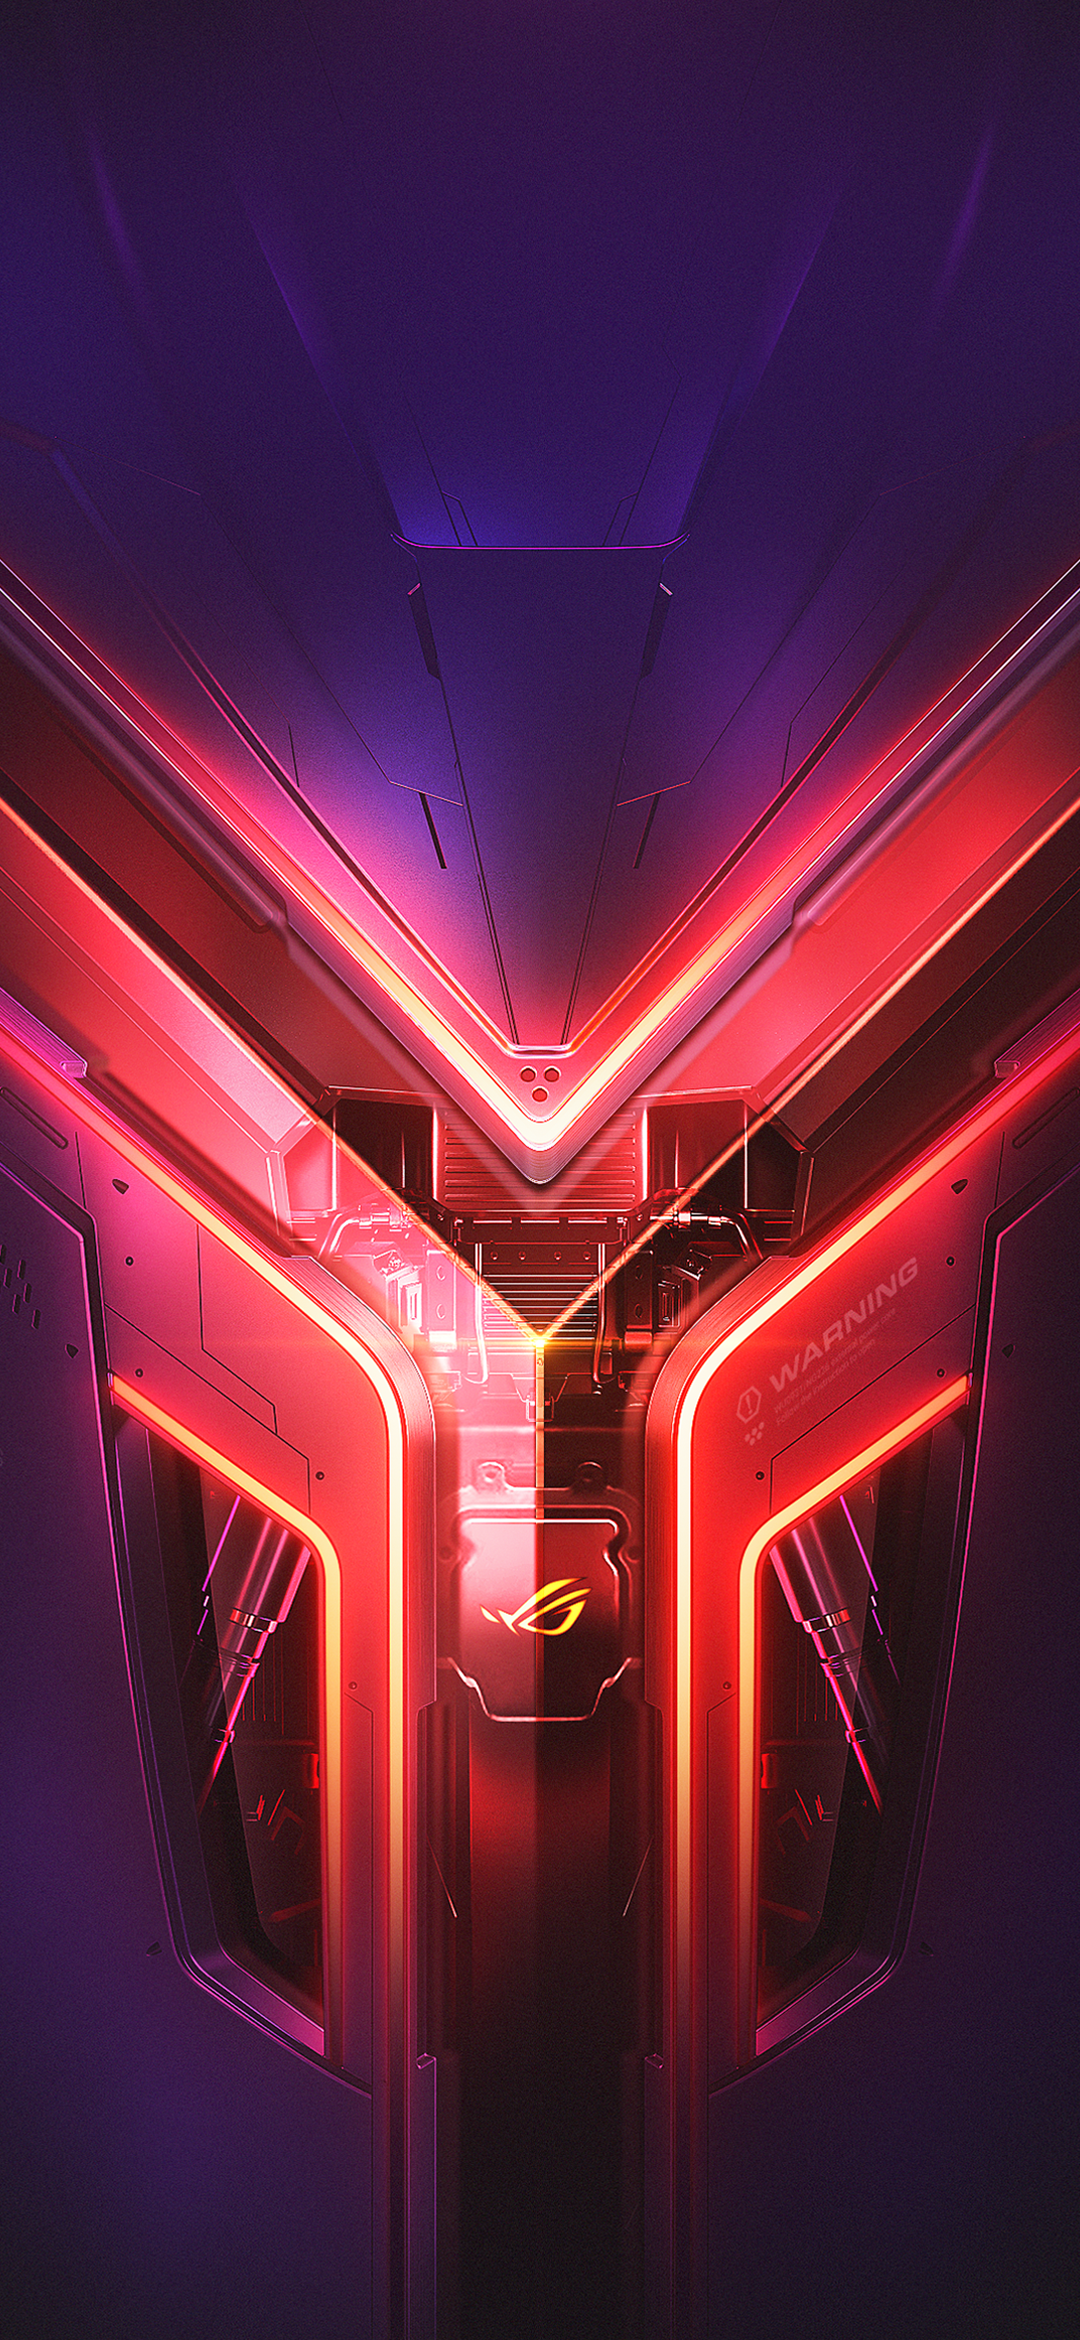 Descargar Asus Rog Phone 3 Stock Wallpapers Fhd In 2020 Gaming Wallpapers Hd Phone Wallpaper Design Stock Wallpaper